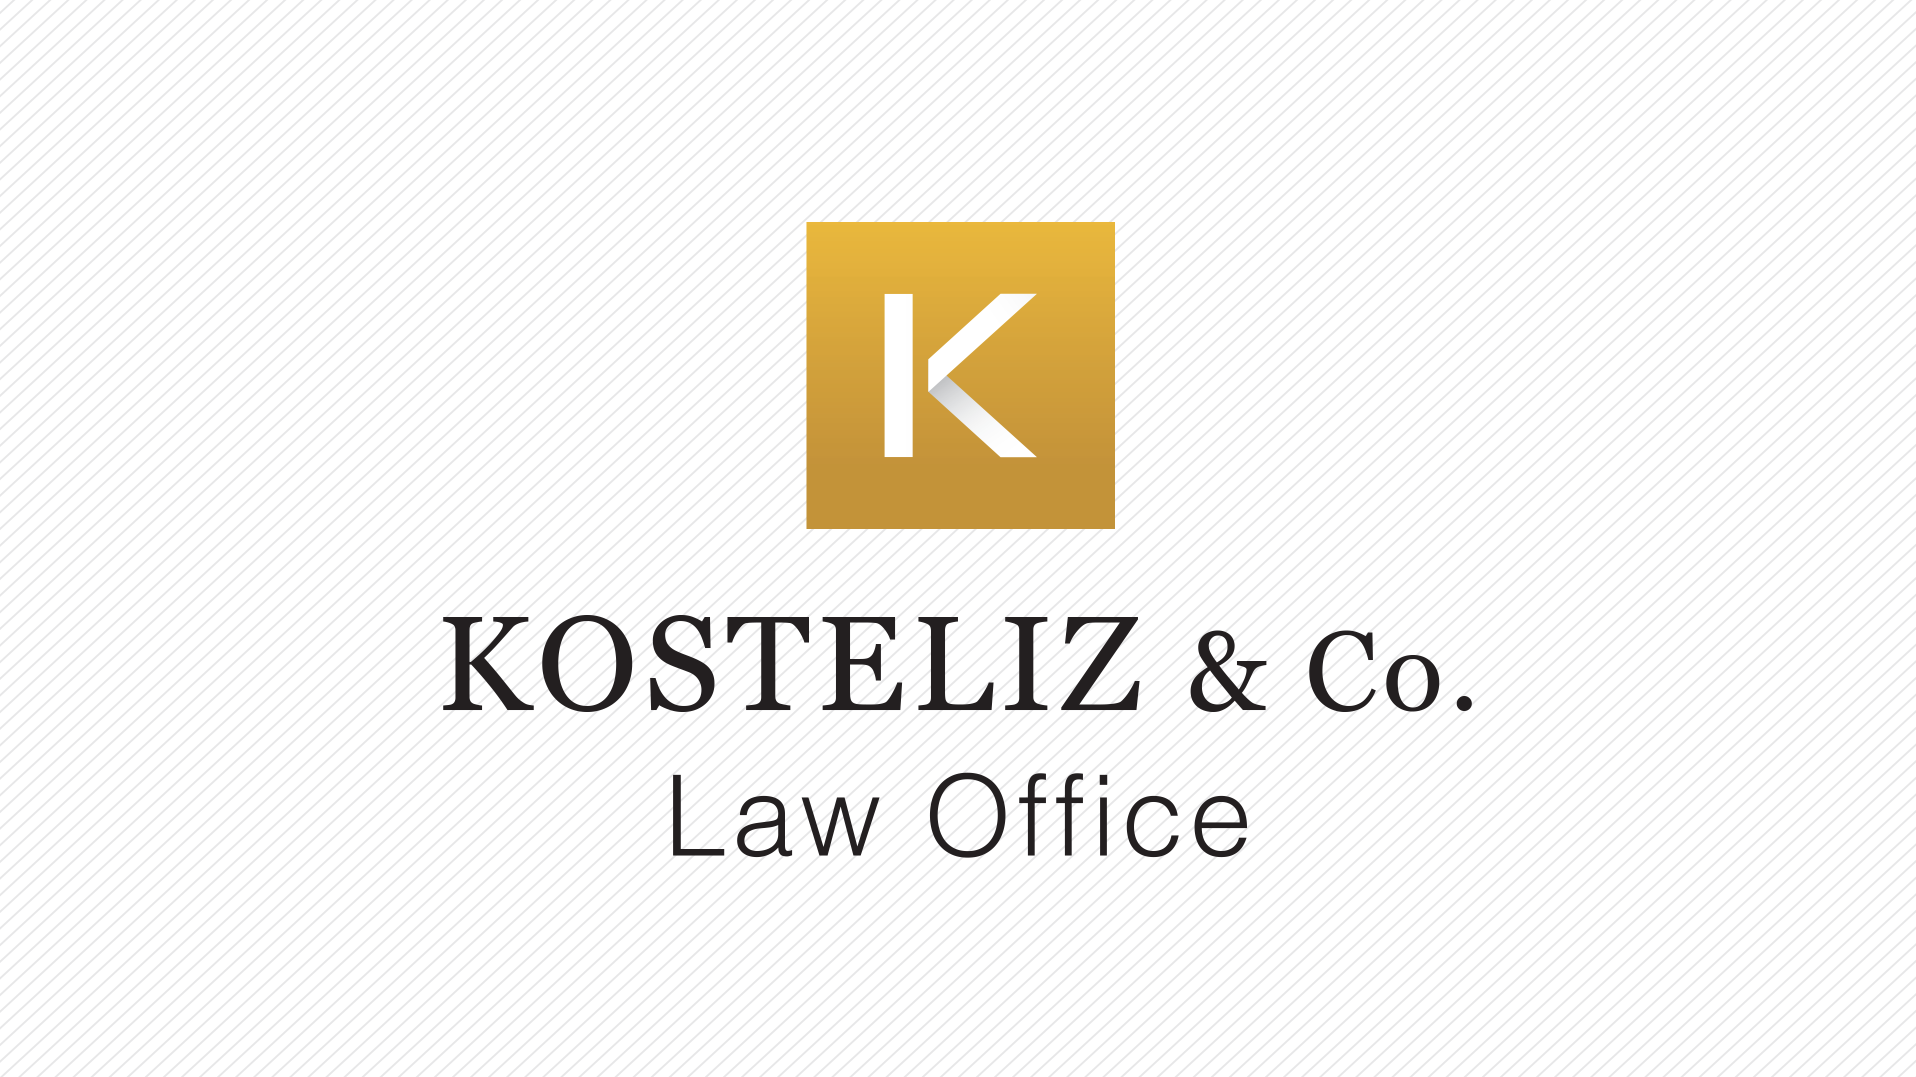 logo 1916x1077 - Kostelitz & Co